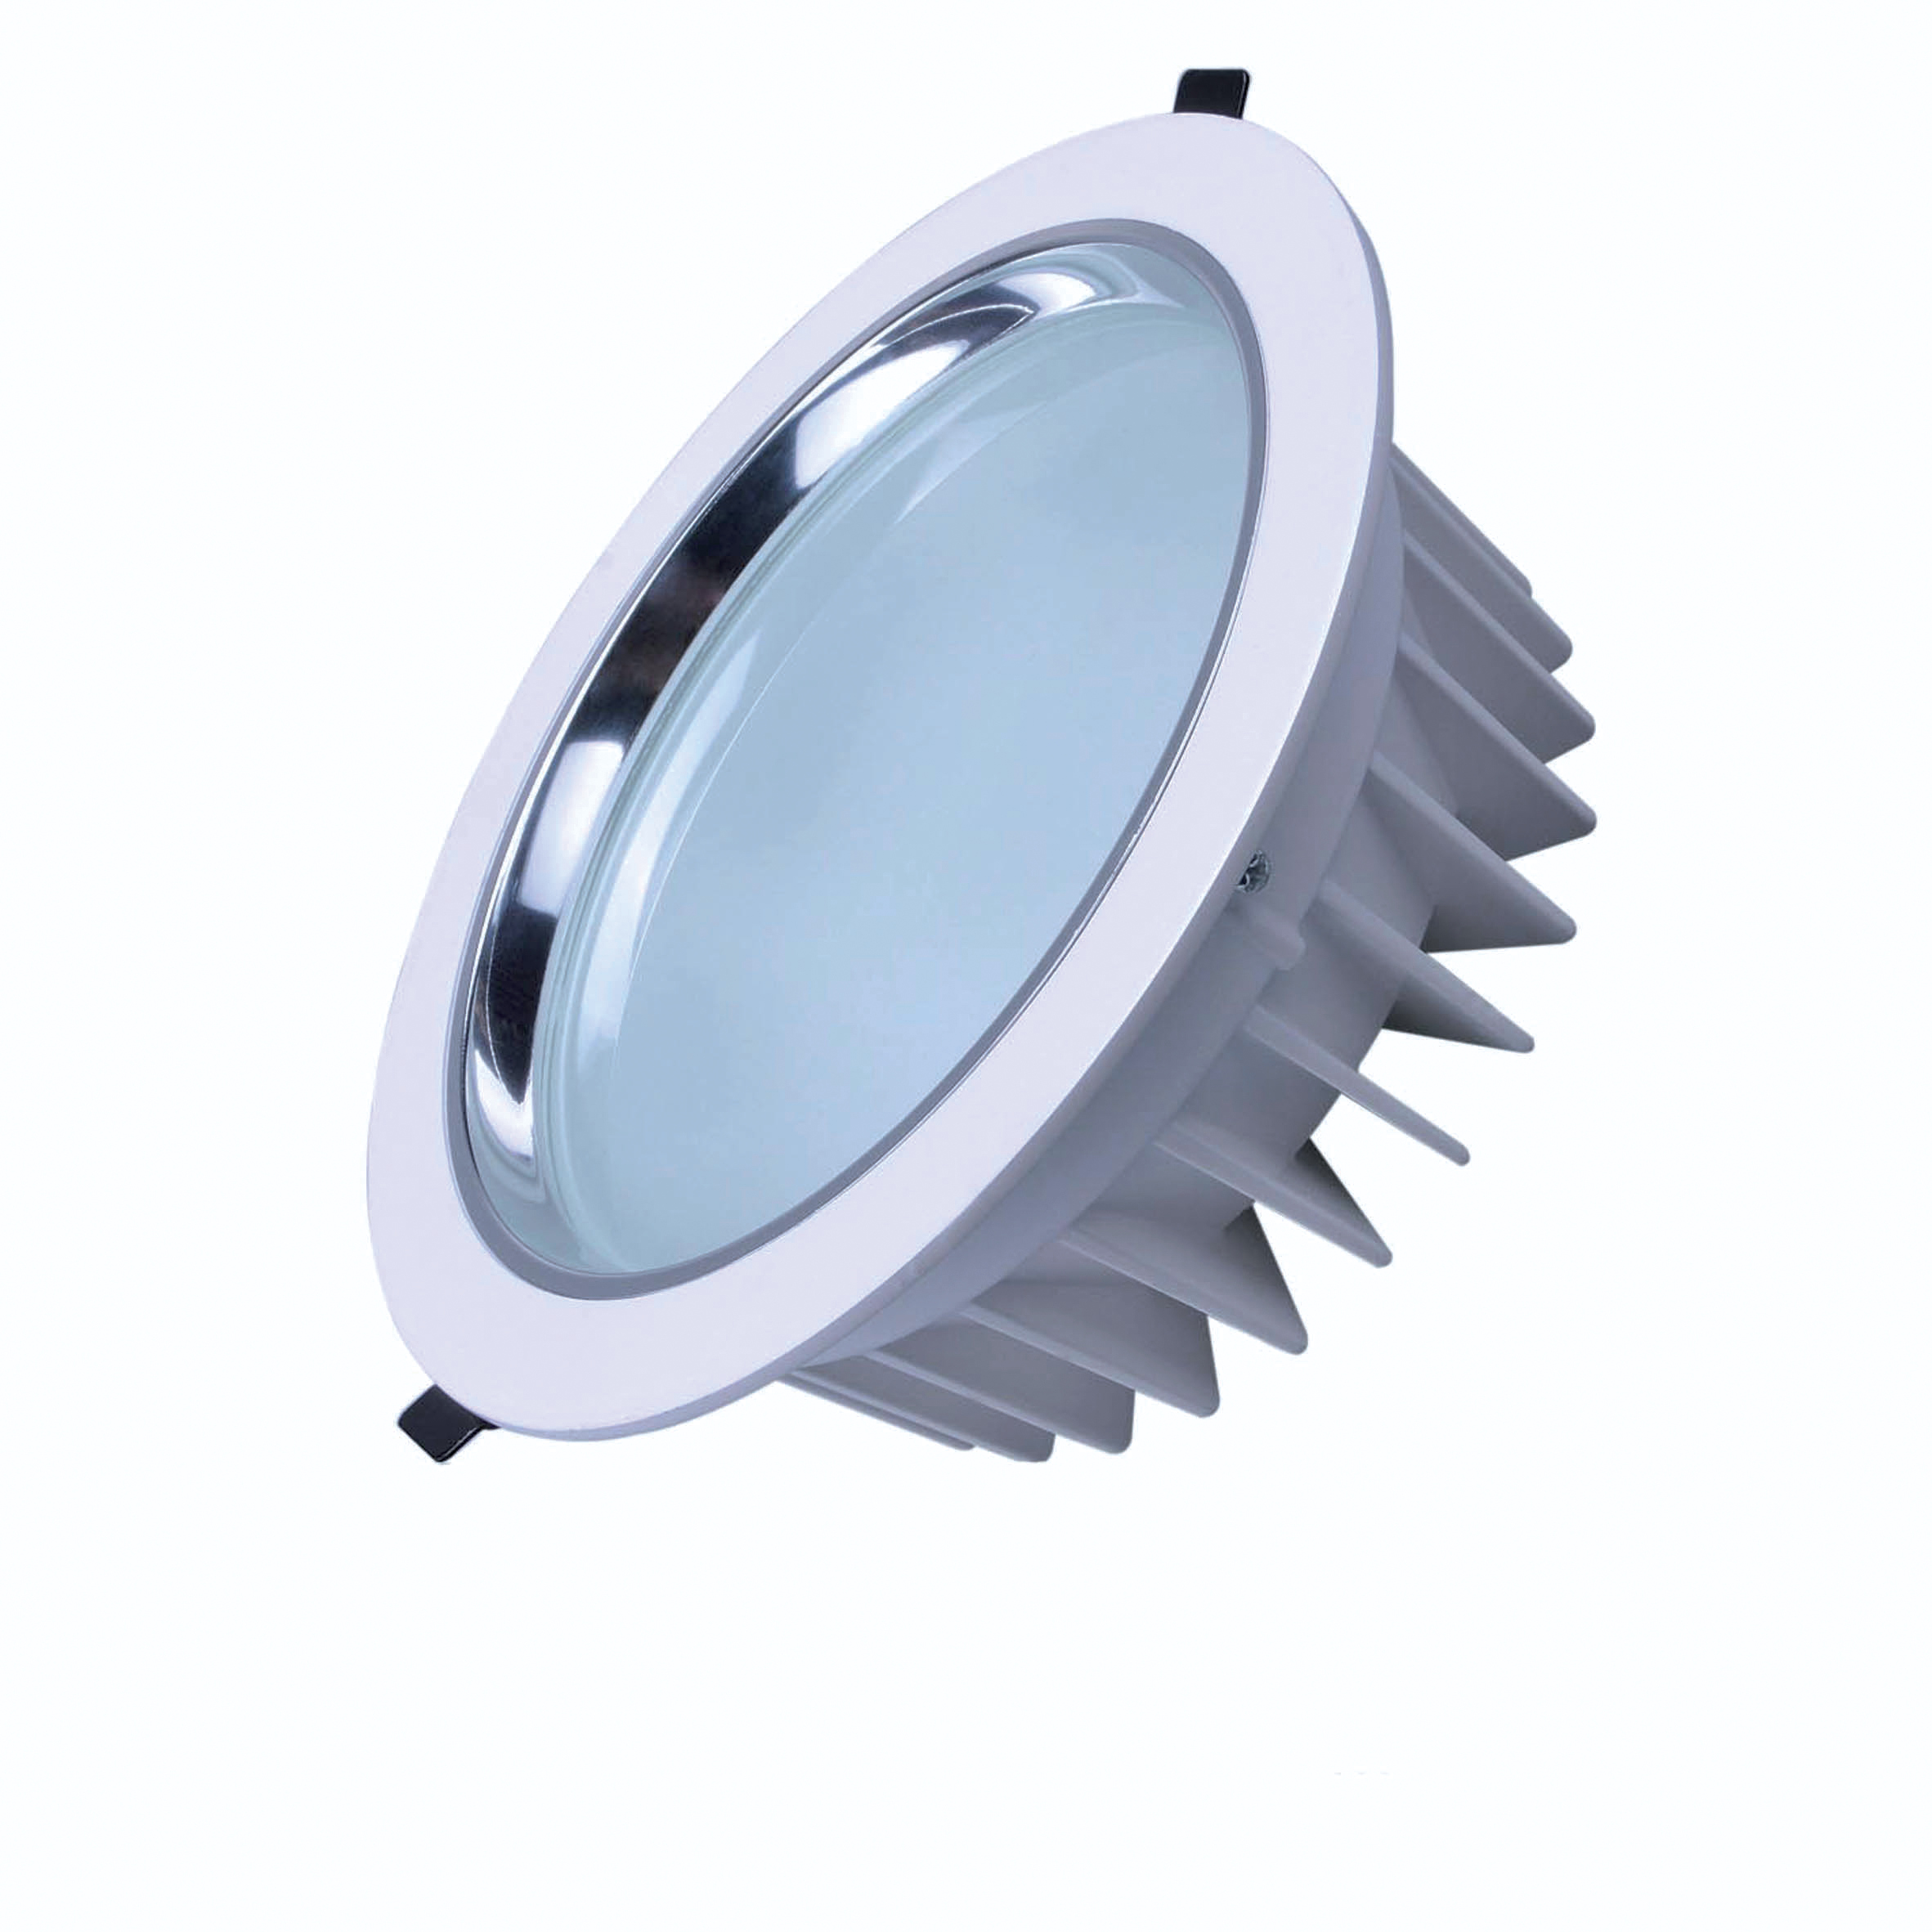 LED Downlight_Estrella Silver Ring_Octa Light_2363x2363_fit_478b24840a